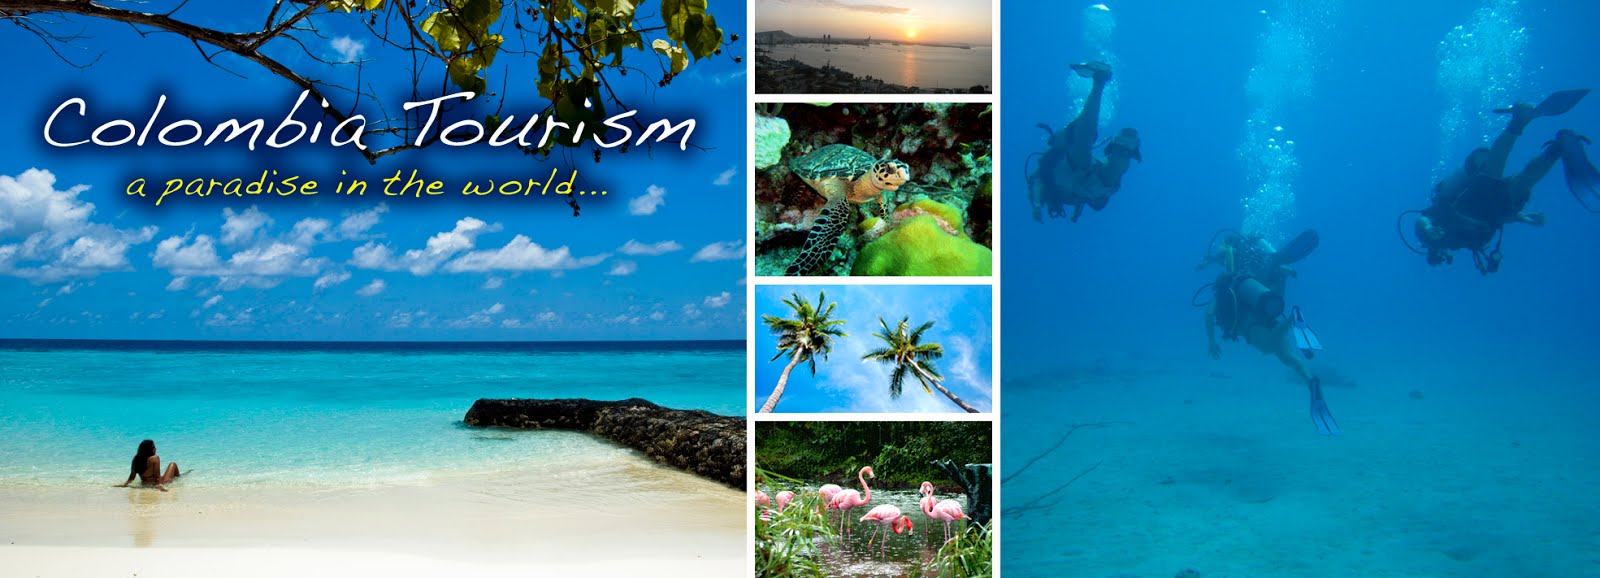 COLOMBIA TOURISM and The Caribbean Ocean, a paradise in the world...